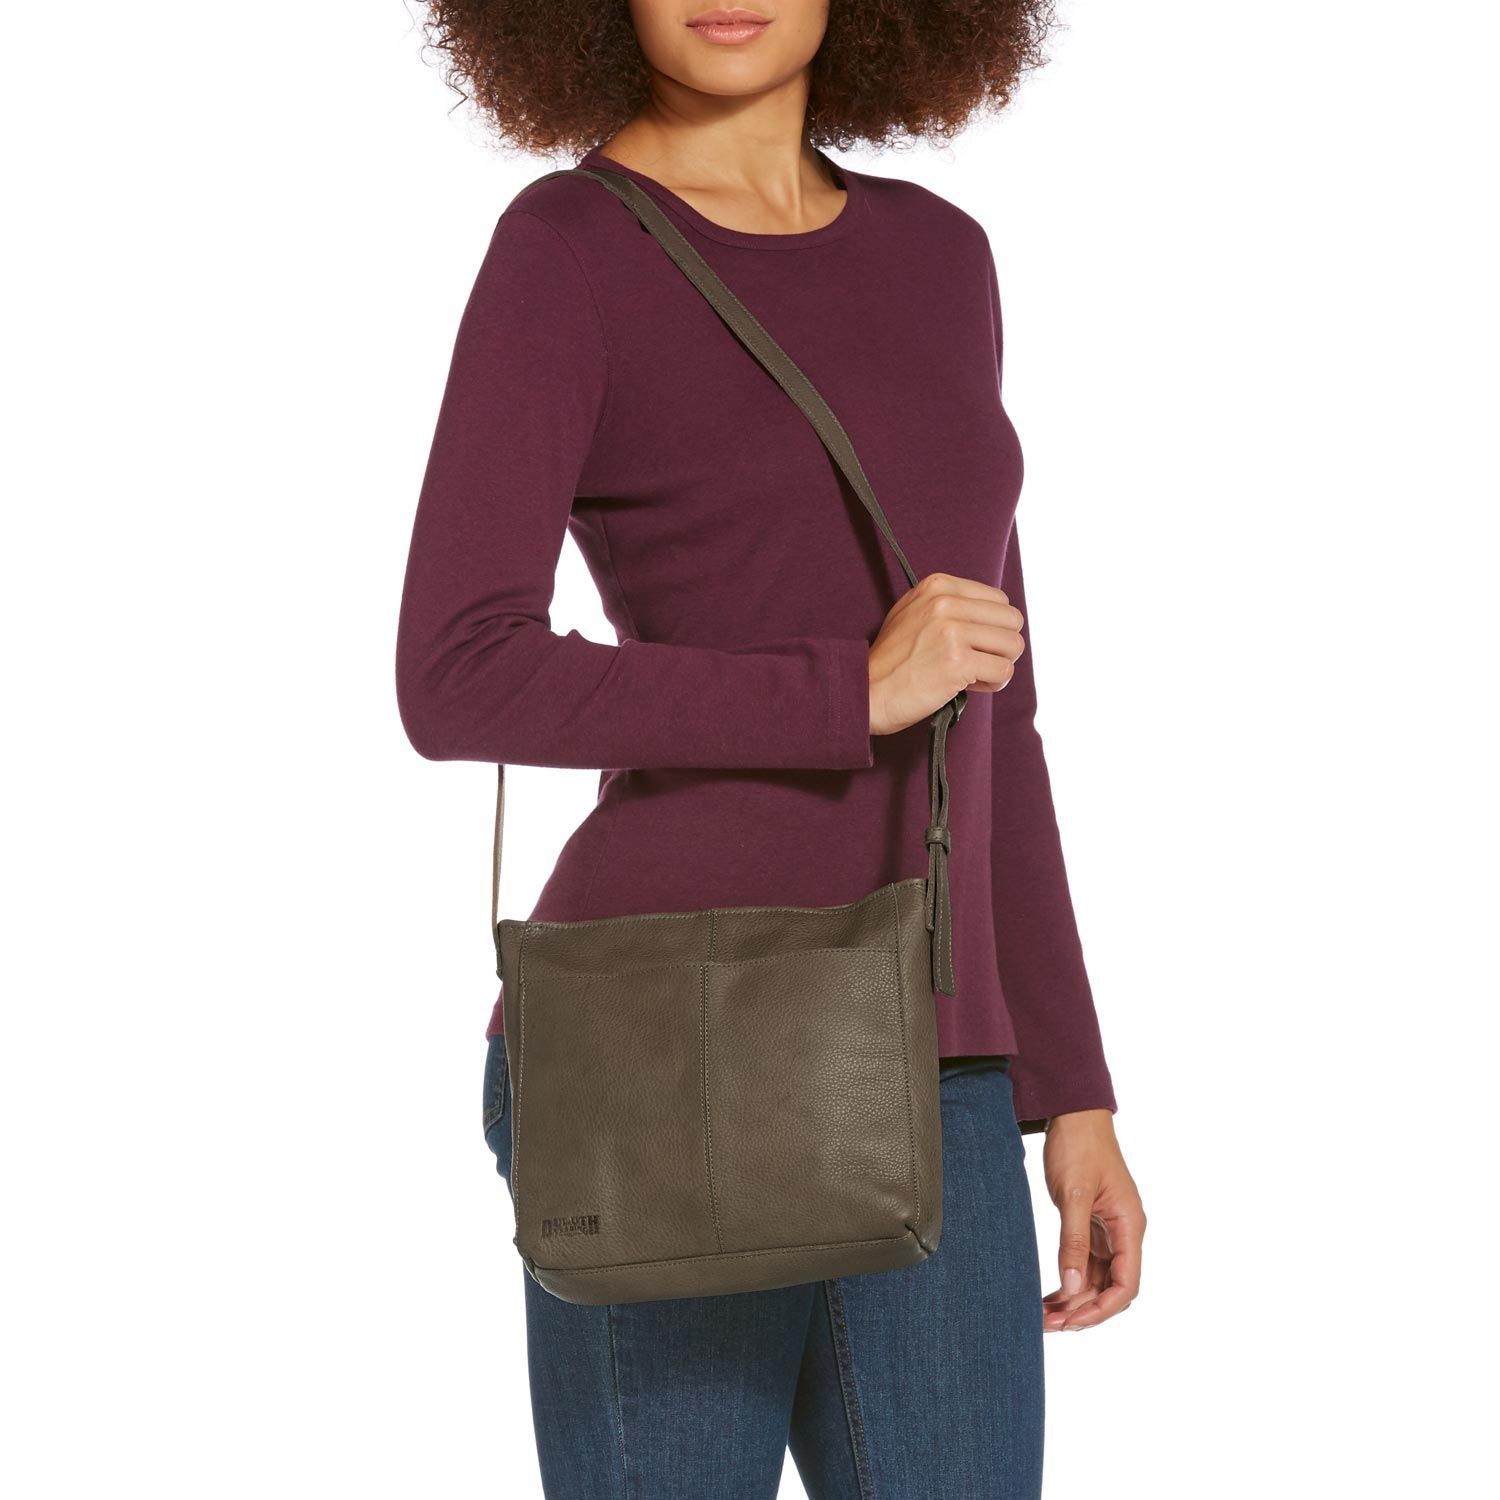 Mother's Day Gift Idea: Women's Lifetime Leather Medium Sling Bag ...